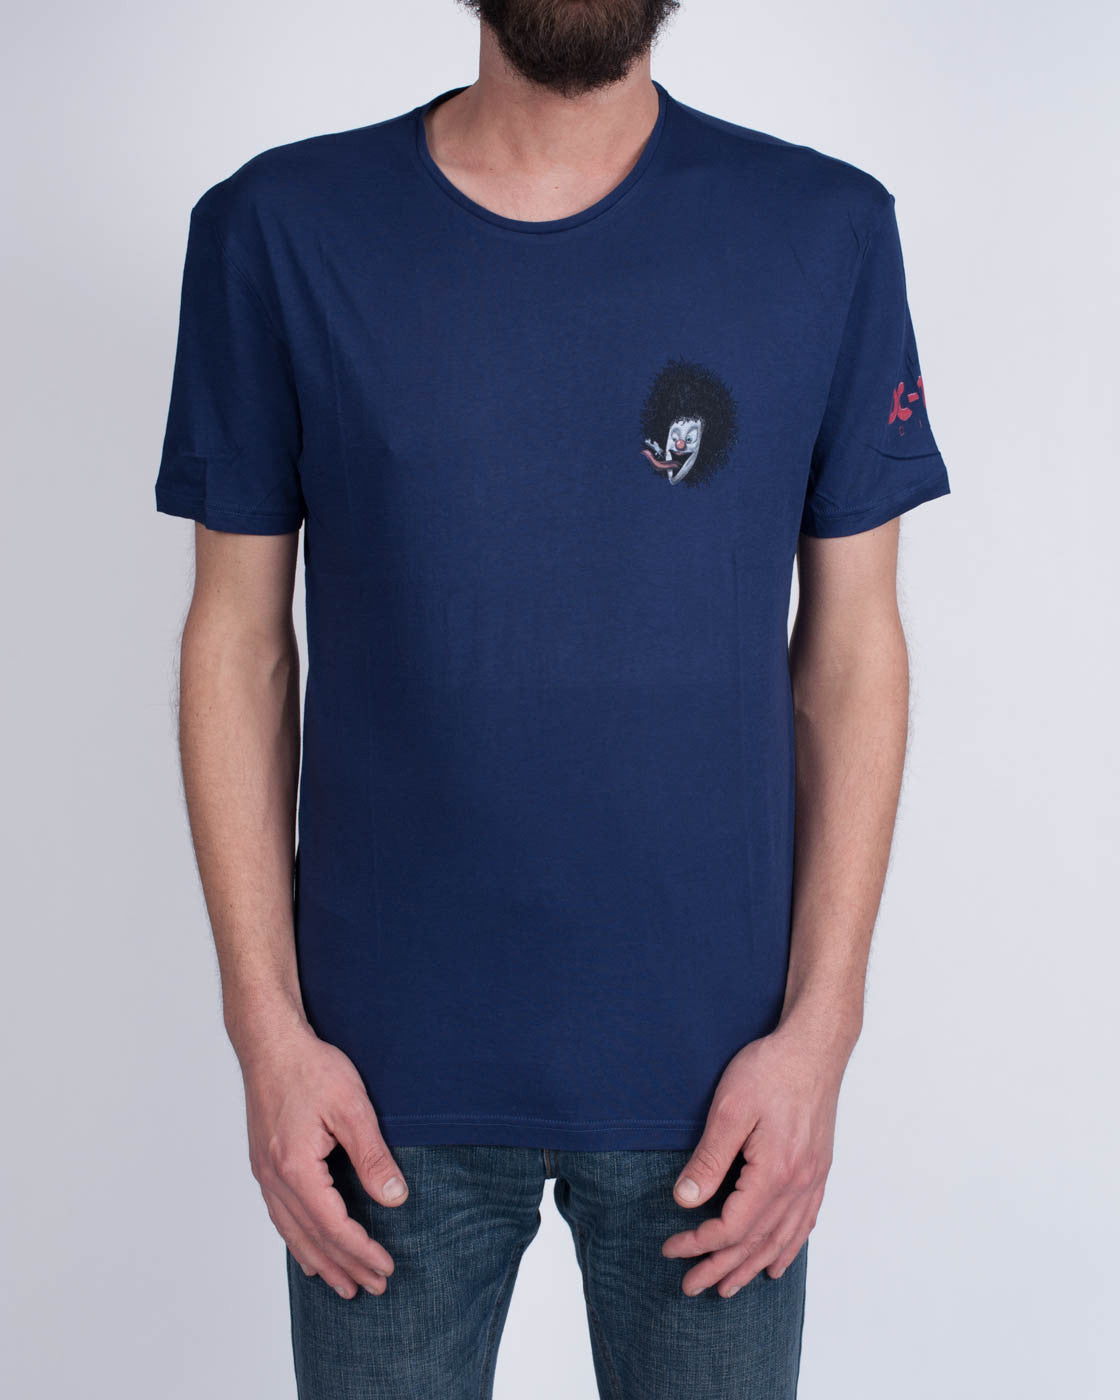 DC10 CIRCOLOCO Small Navy Clown T-Shirt